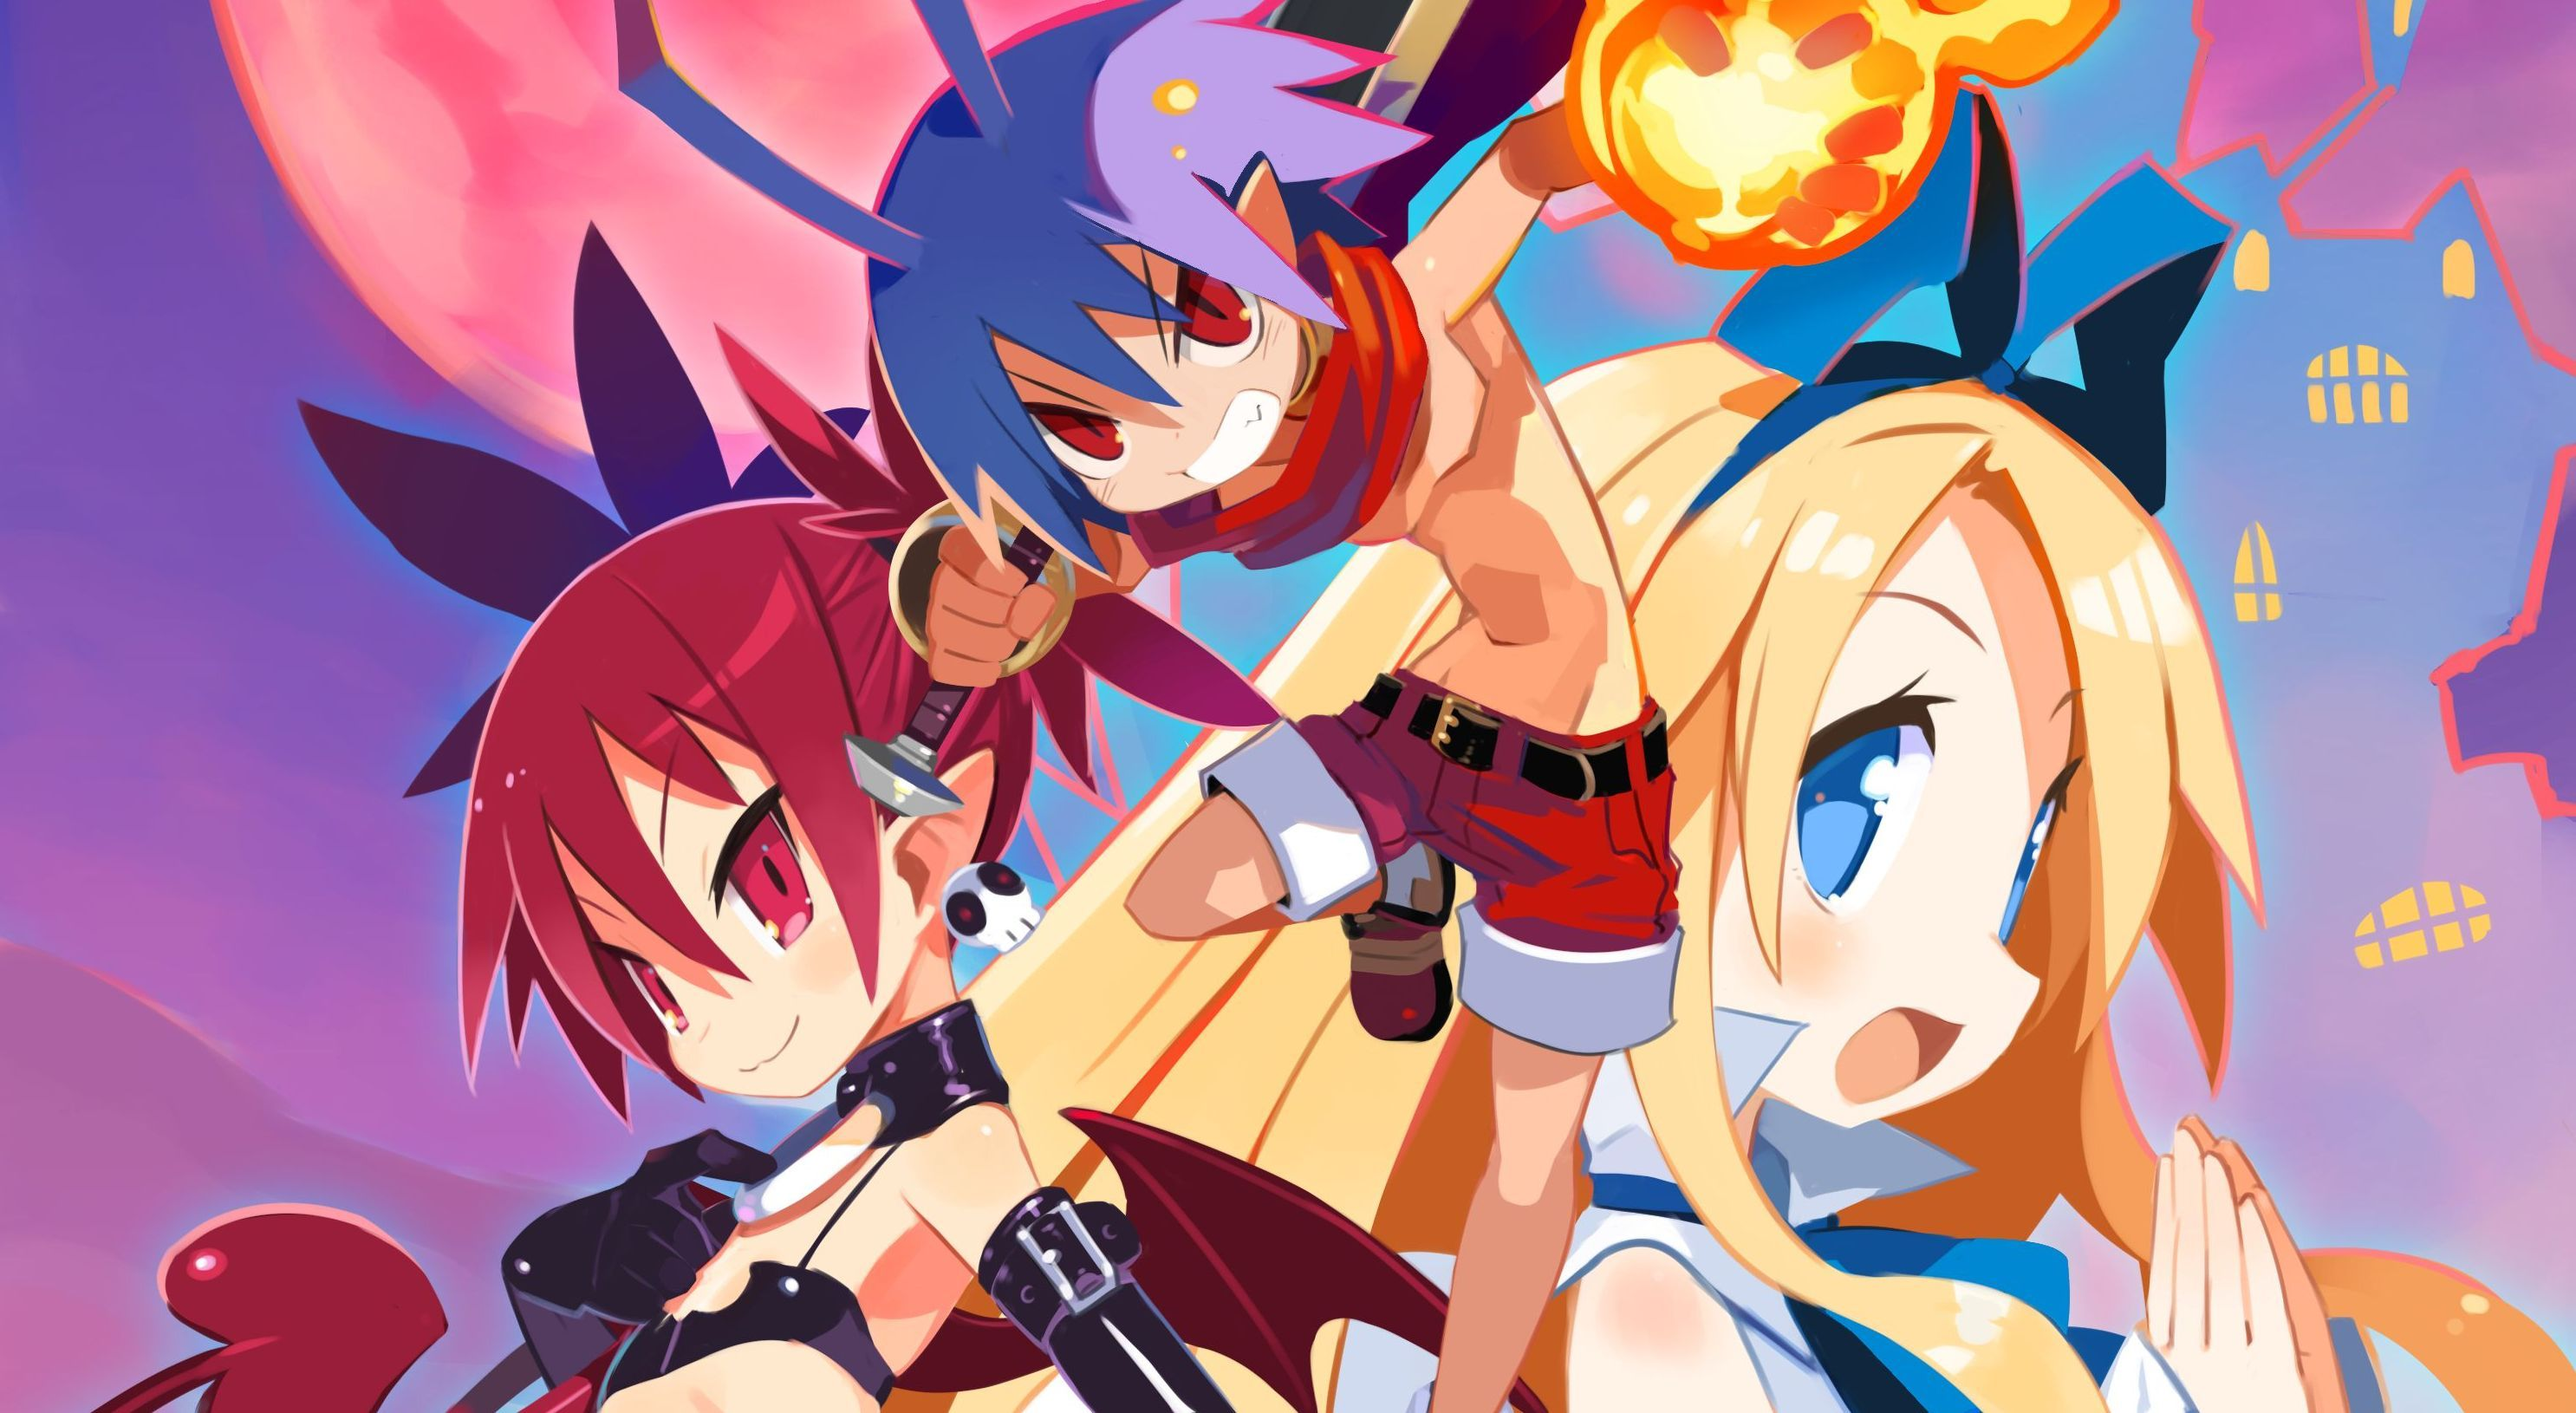 Disgaea 1 Complete For Ps4 And Nintendo Switch Gets New Trailer Showing Gameplay Disgaea Nintendo Switch Playstation